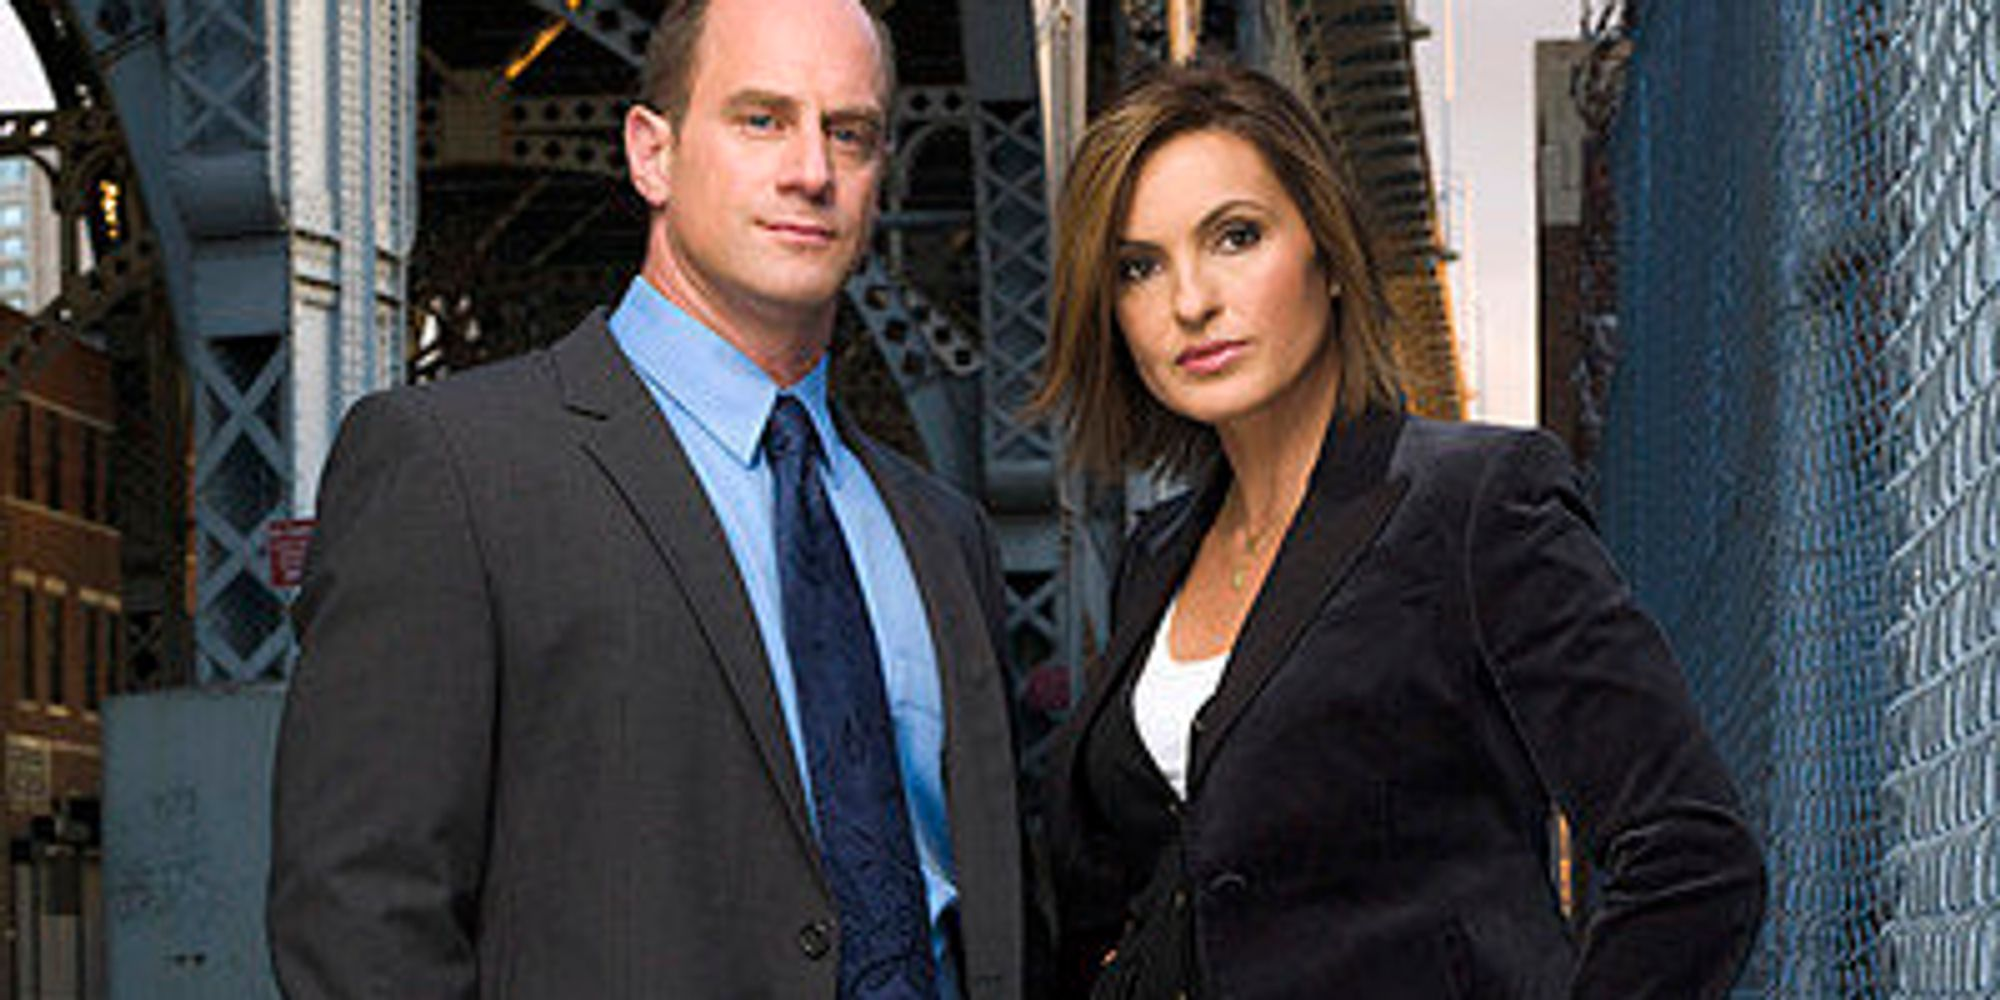 Mariska Hargitay And Chris Meloni Reunite Delighting Law